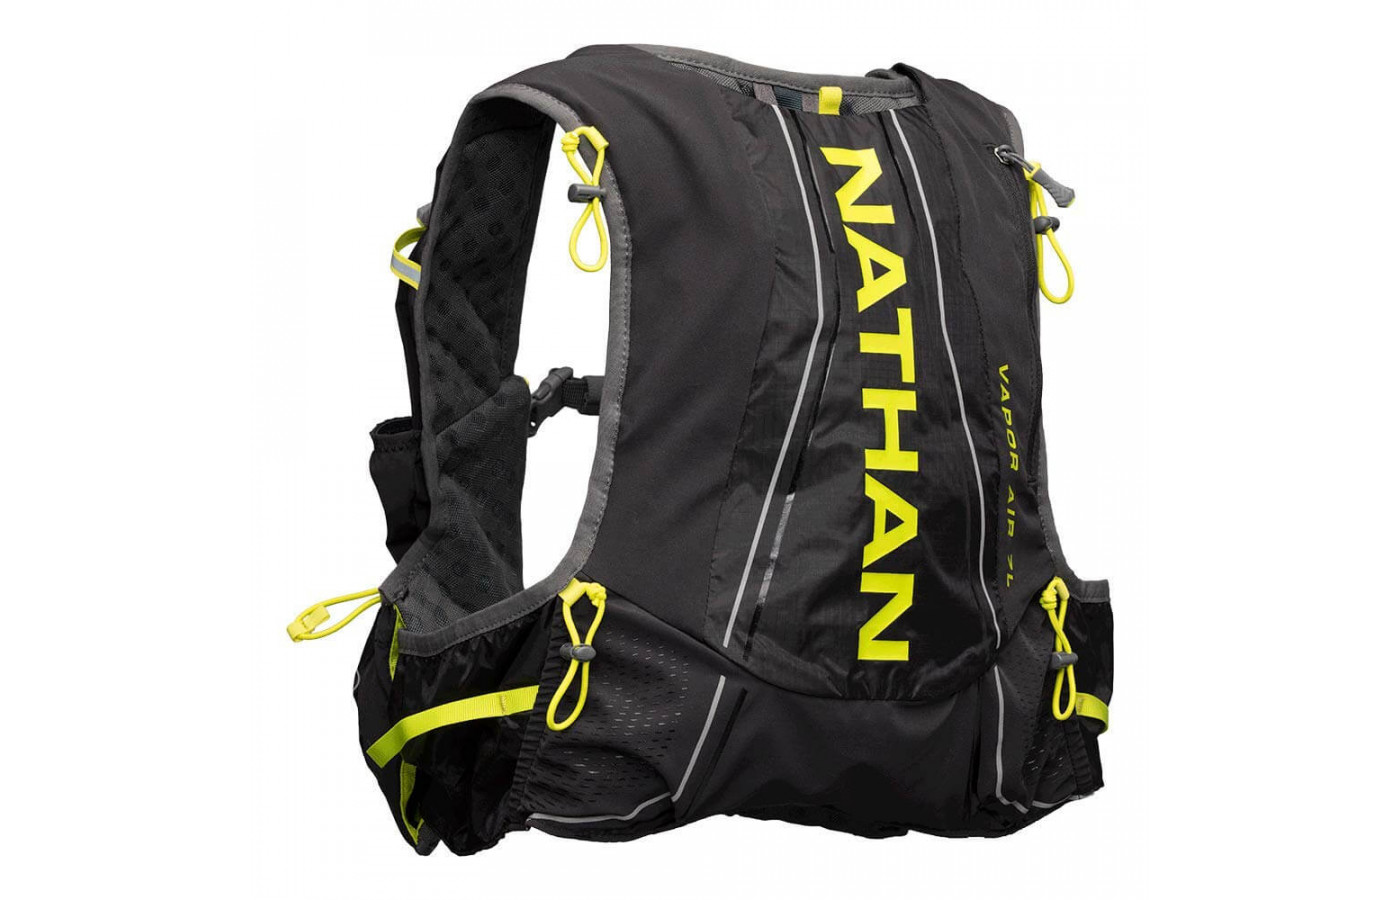 The Vapor Air comes equipped with a two-liter BPA-free hydration bladder.